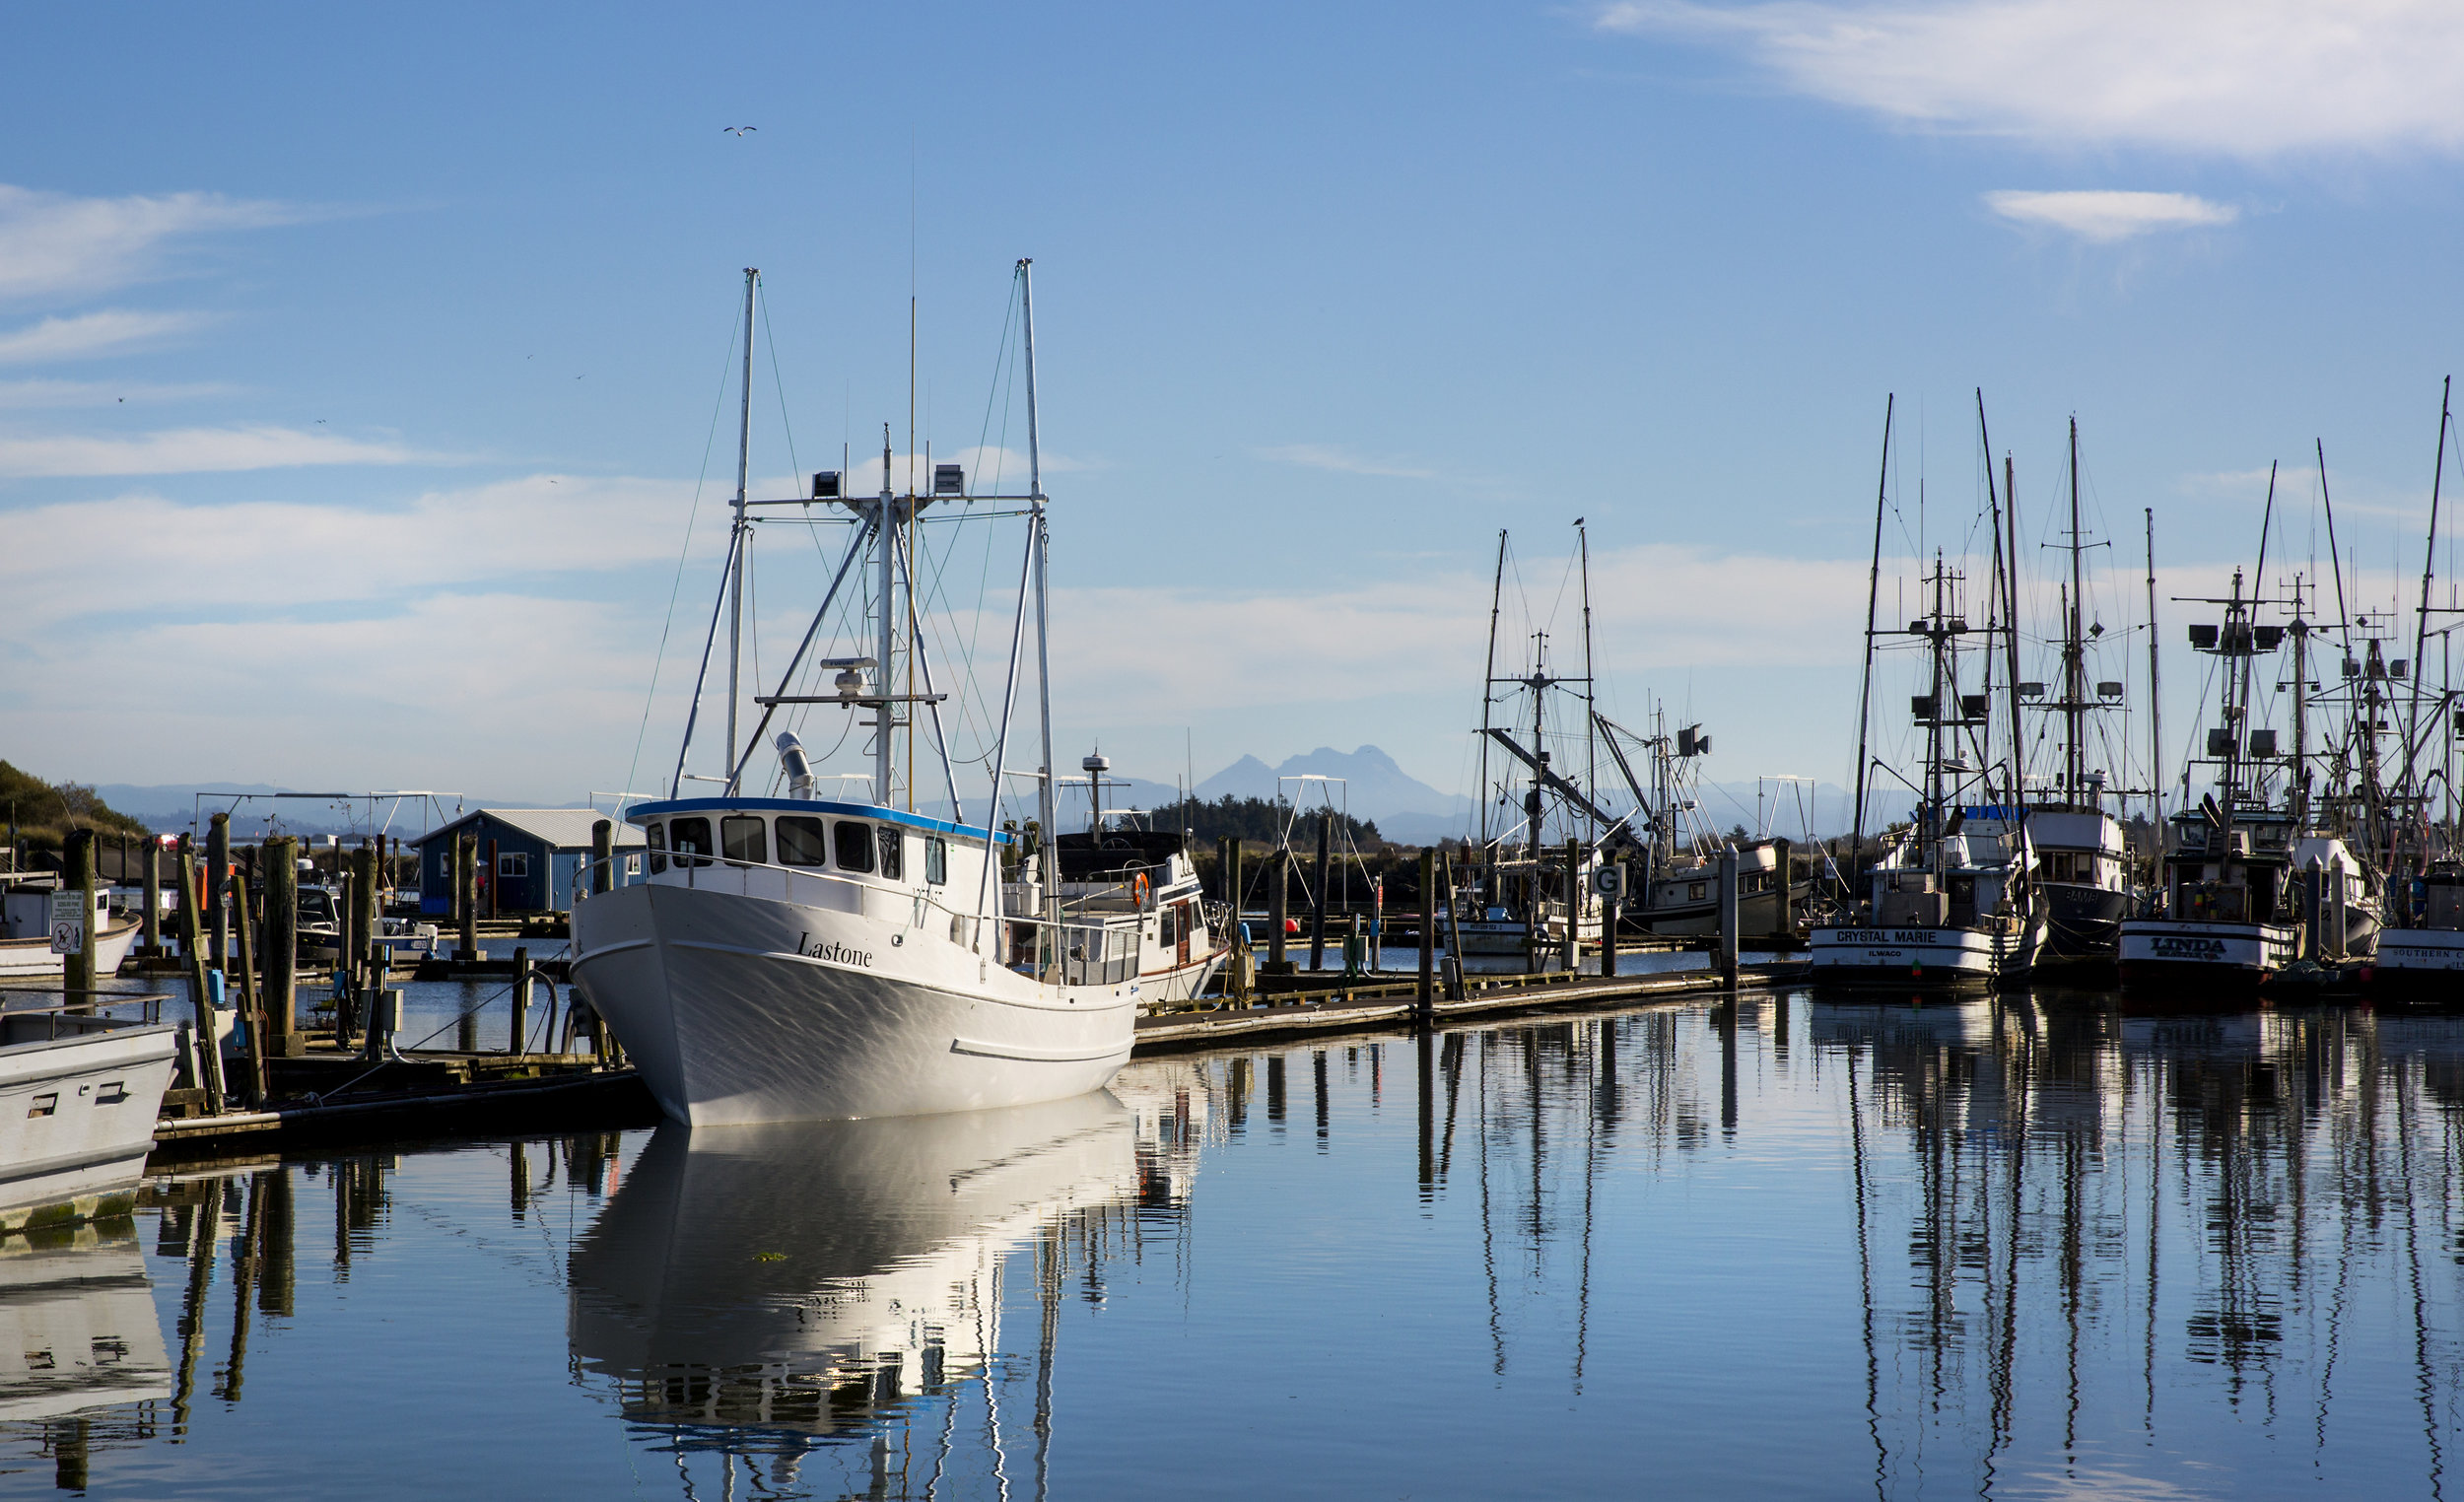 The Salt Hotel and Pub, located in the Port of Ilwaco, features scenic views of the fishing terminal, the west side of Cape Disappointment State Park, and of Baker Bay. (Sy Bean / Seattle Refined)